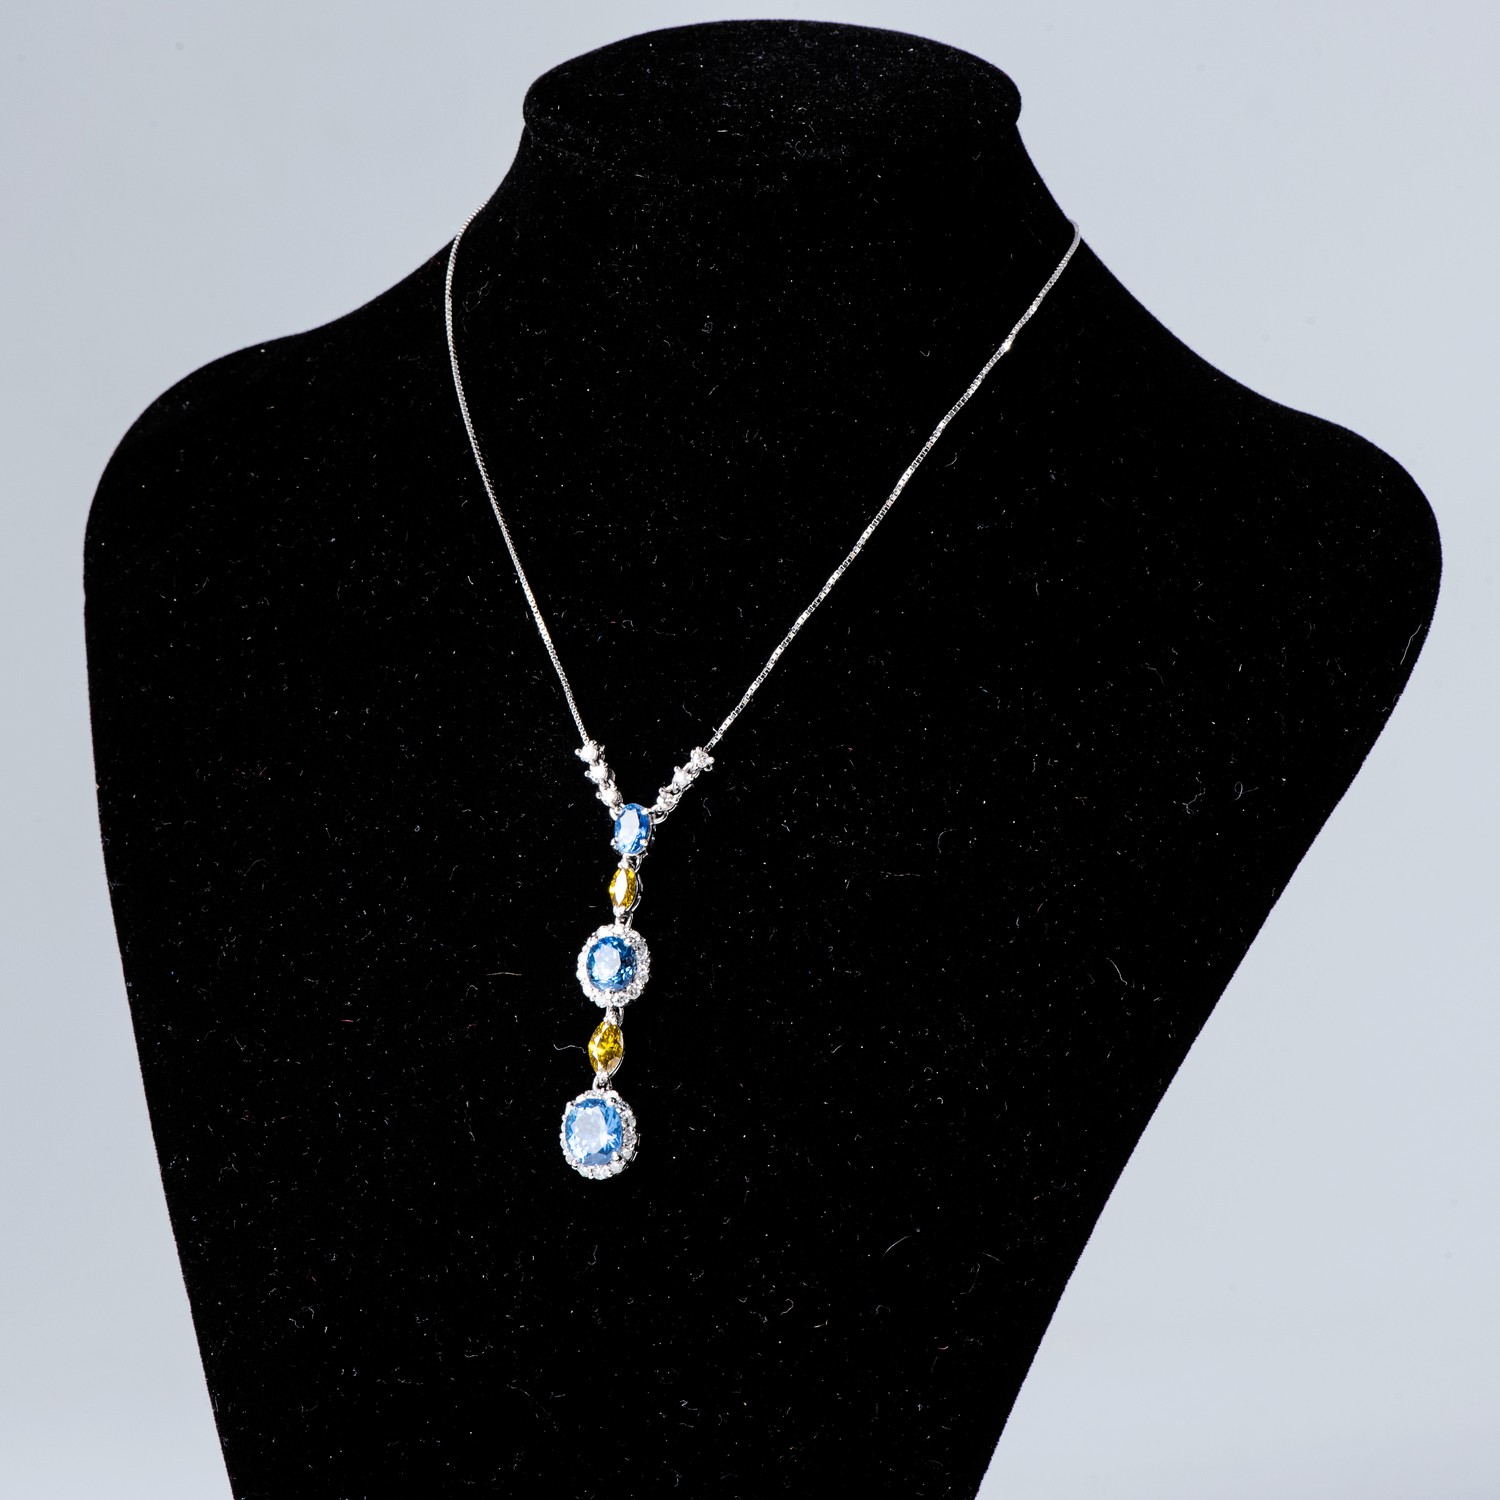 A SAPPHIRE AND DIAMOND NECKLACE - Image 2 of 2